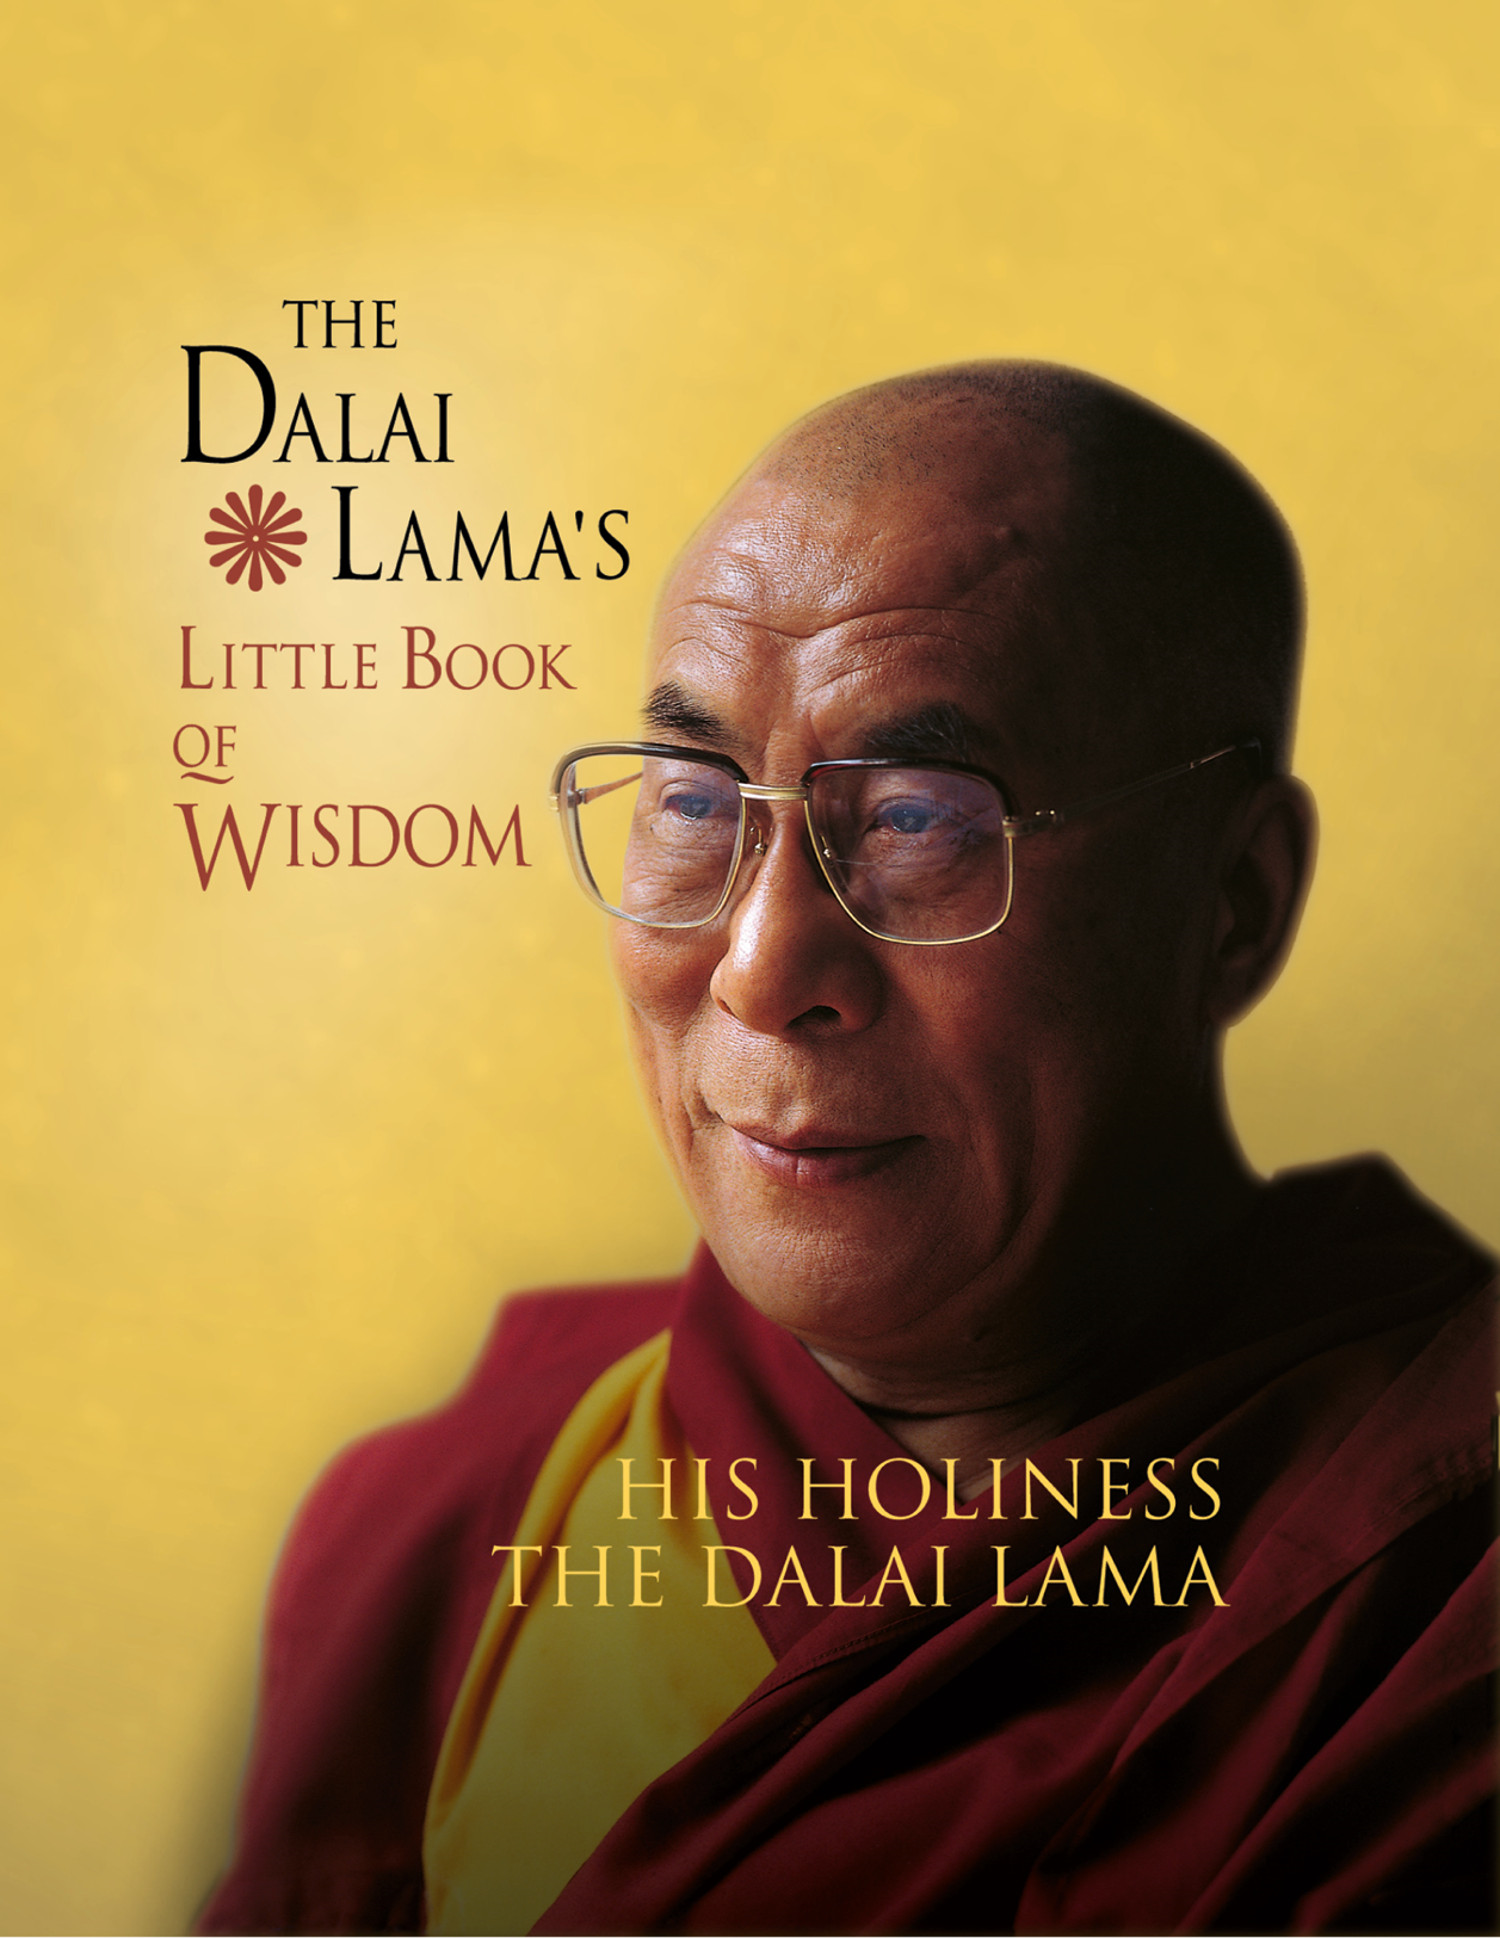 The Dalai Lama?s Little Book of Wisdom